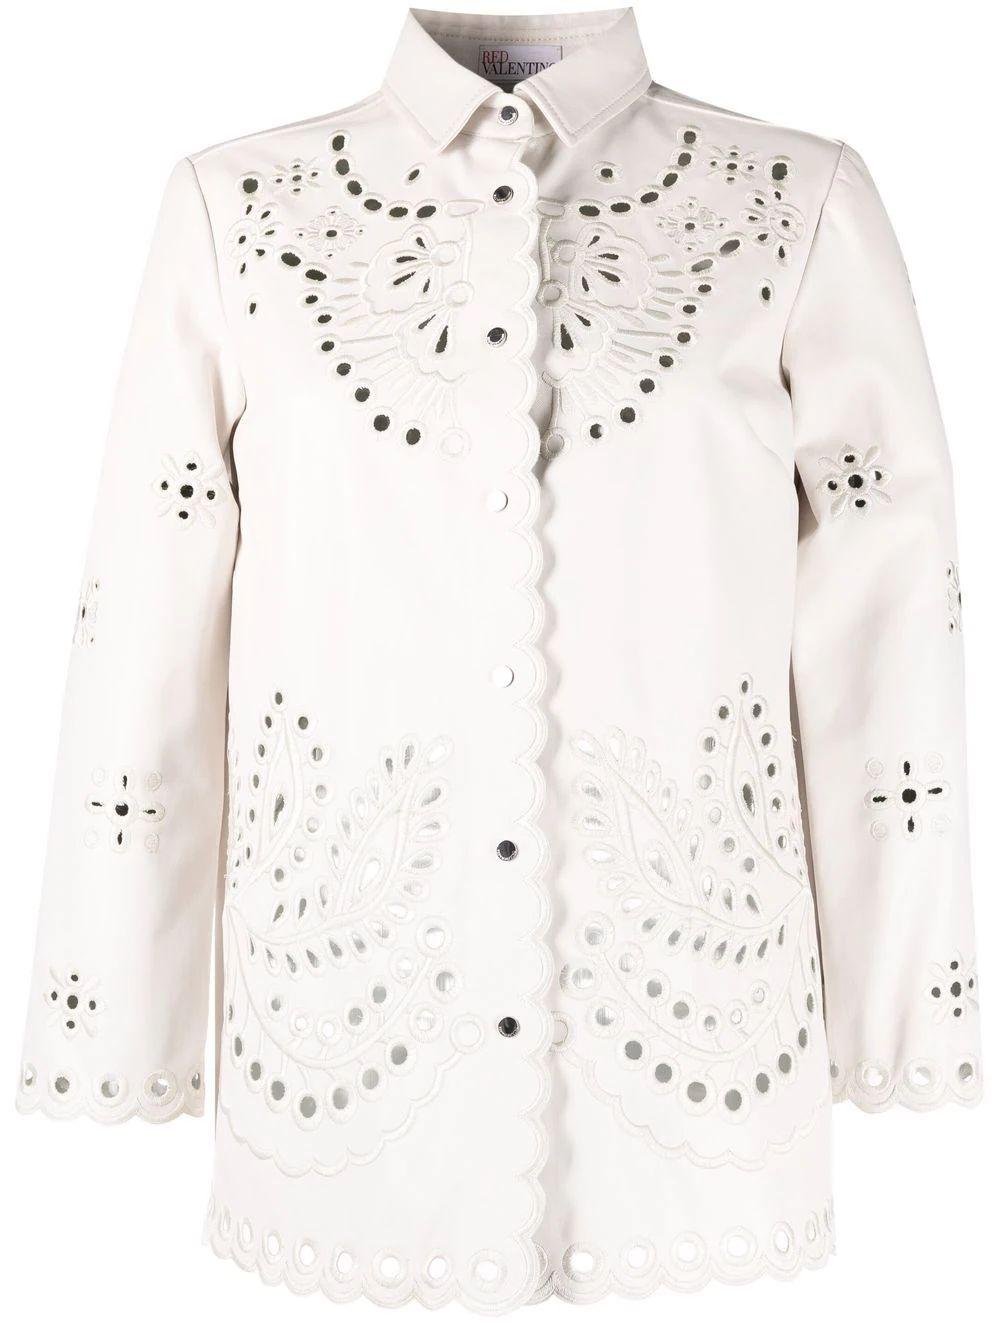 Leather Eyelet Shirt Jacket